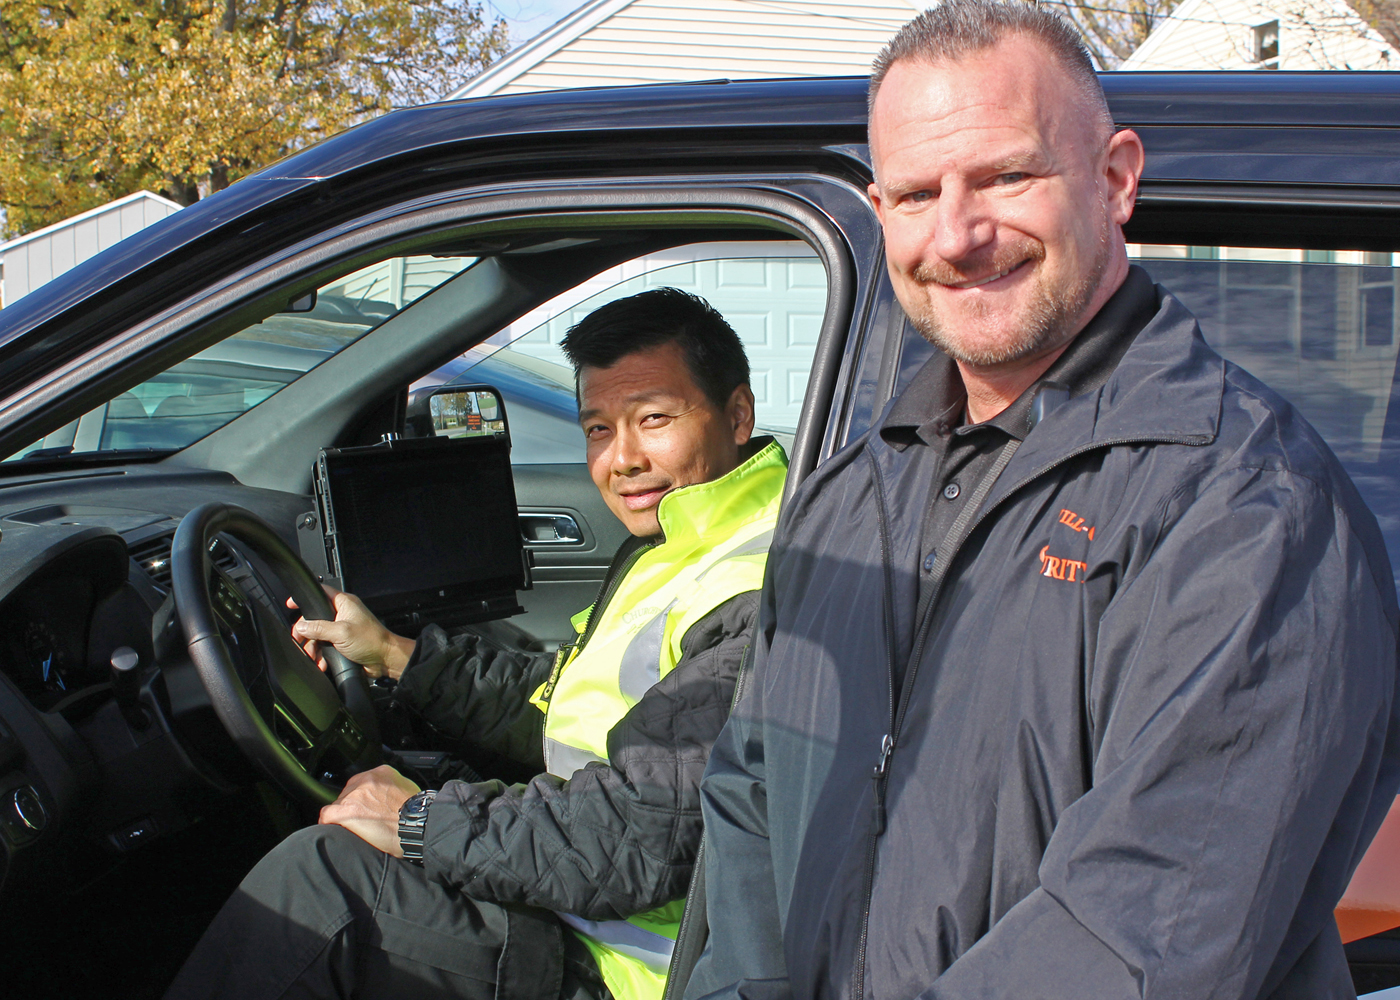 Churchville-Chili Security Officer Rick Allain (l) with Director of School Safety and Security William Sanborn in one of the district's MDC-equipped vehicles. Provided photo